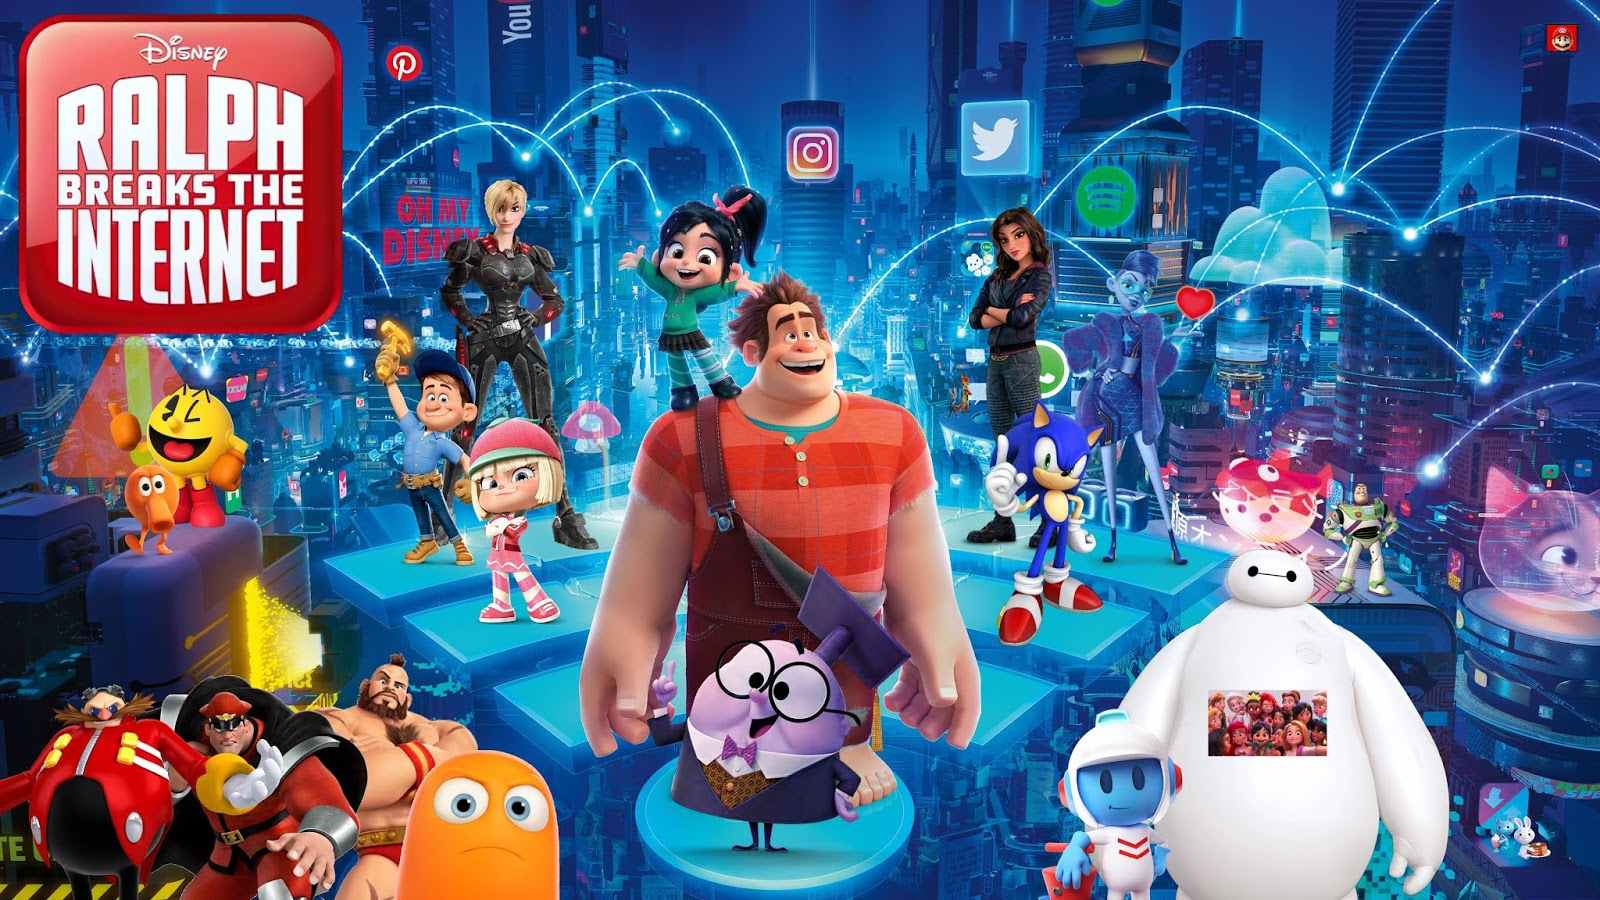 Mr Gordo S House Of Fallen Articles New Review Ralph Breaks The Internet 2018